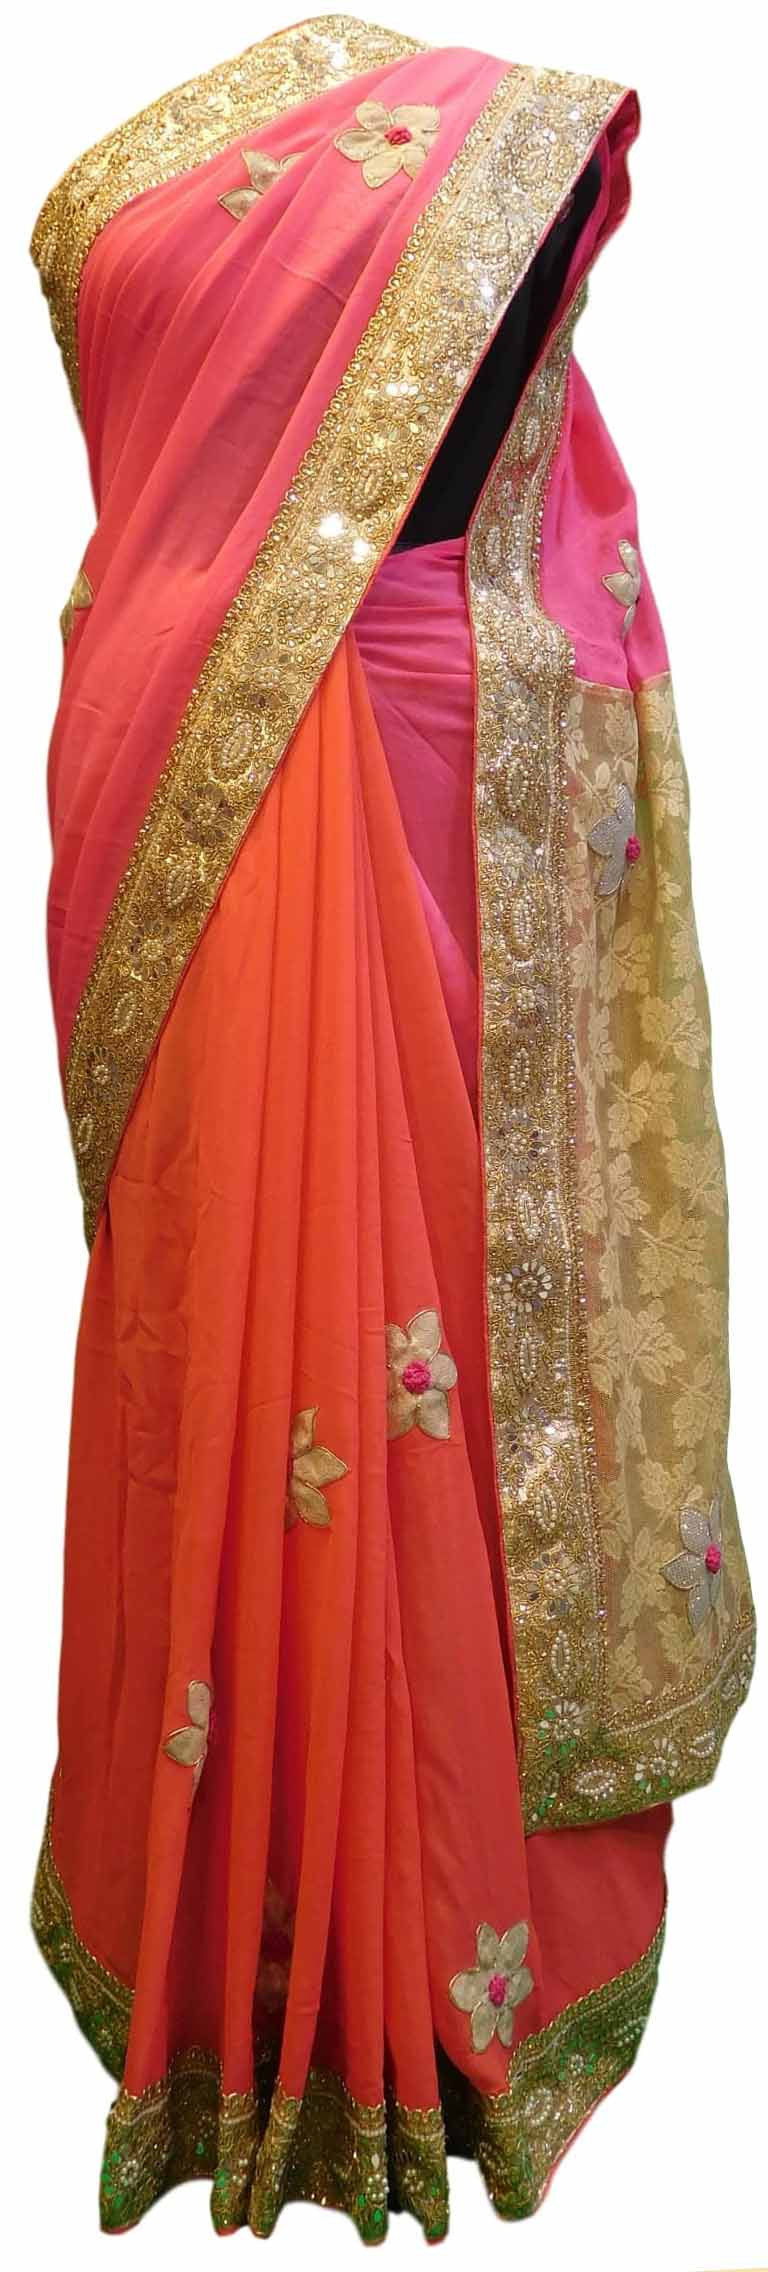 Pink Designer Georgette Sari Zari, Pearl, Mirror Thread Embroidery Work Saree